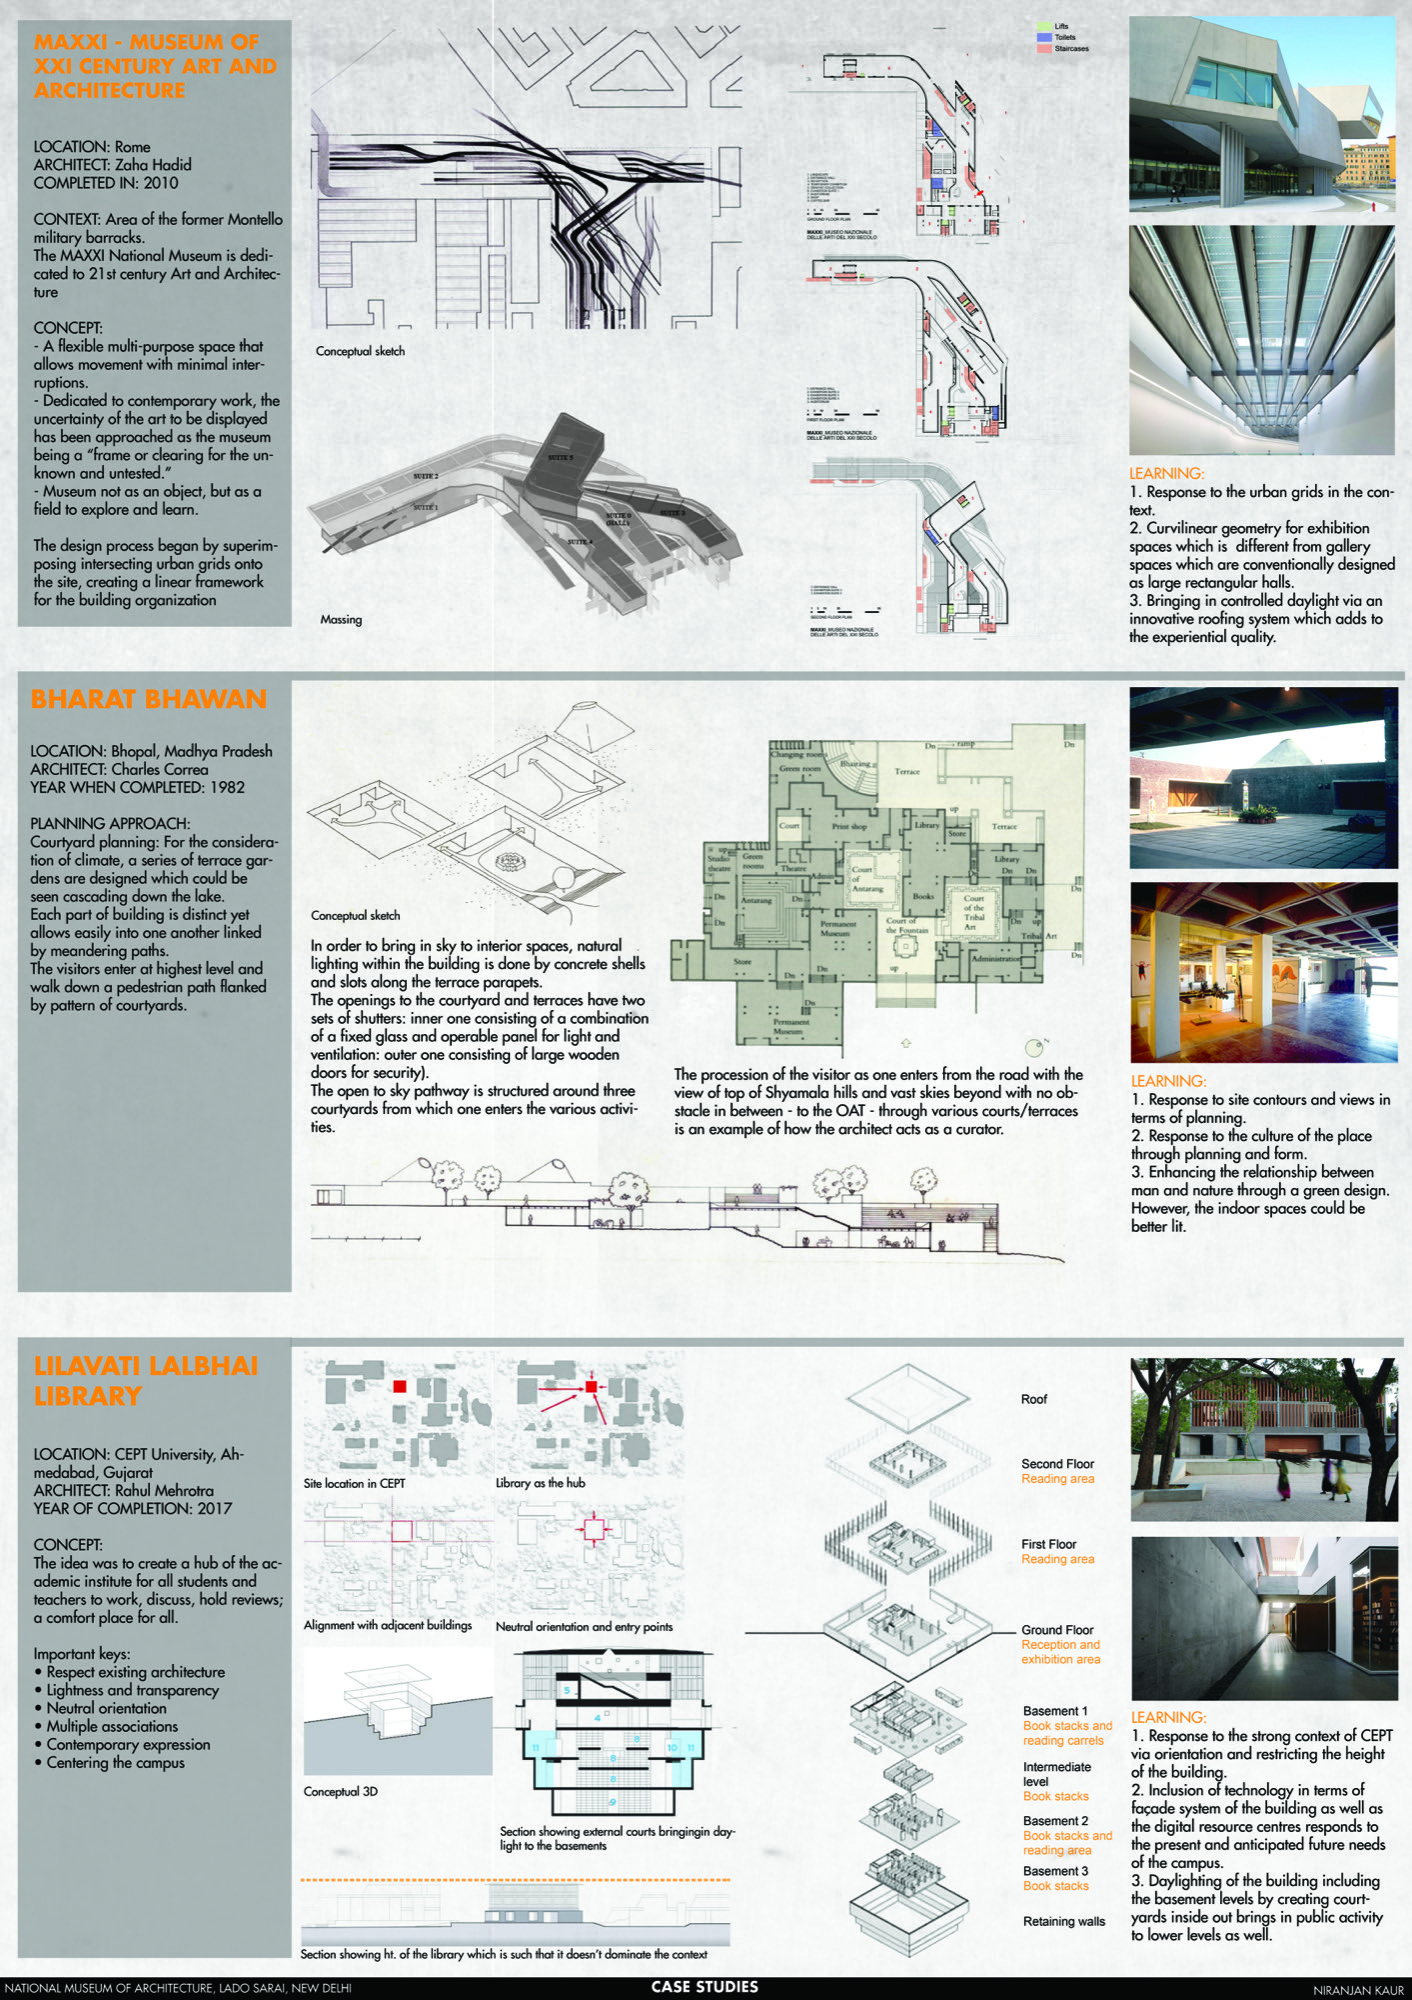 B.Arch Thesis: National Museum of Architecture, New Delhi, by Niranjan Kaur 14